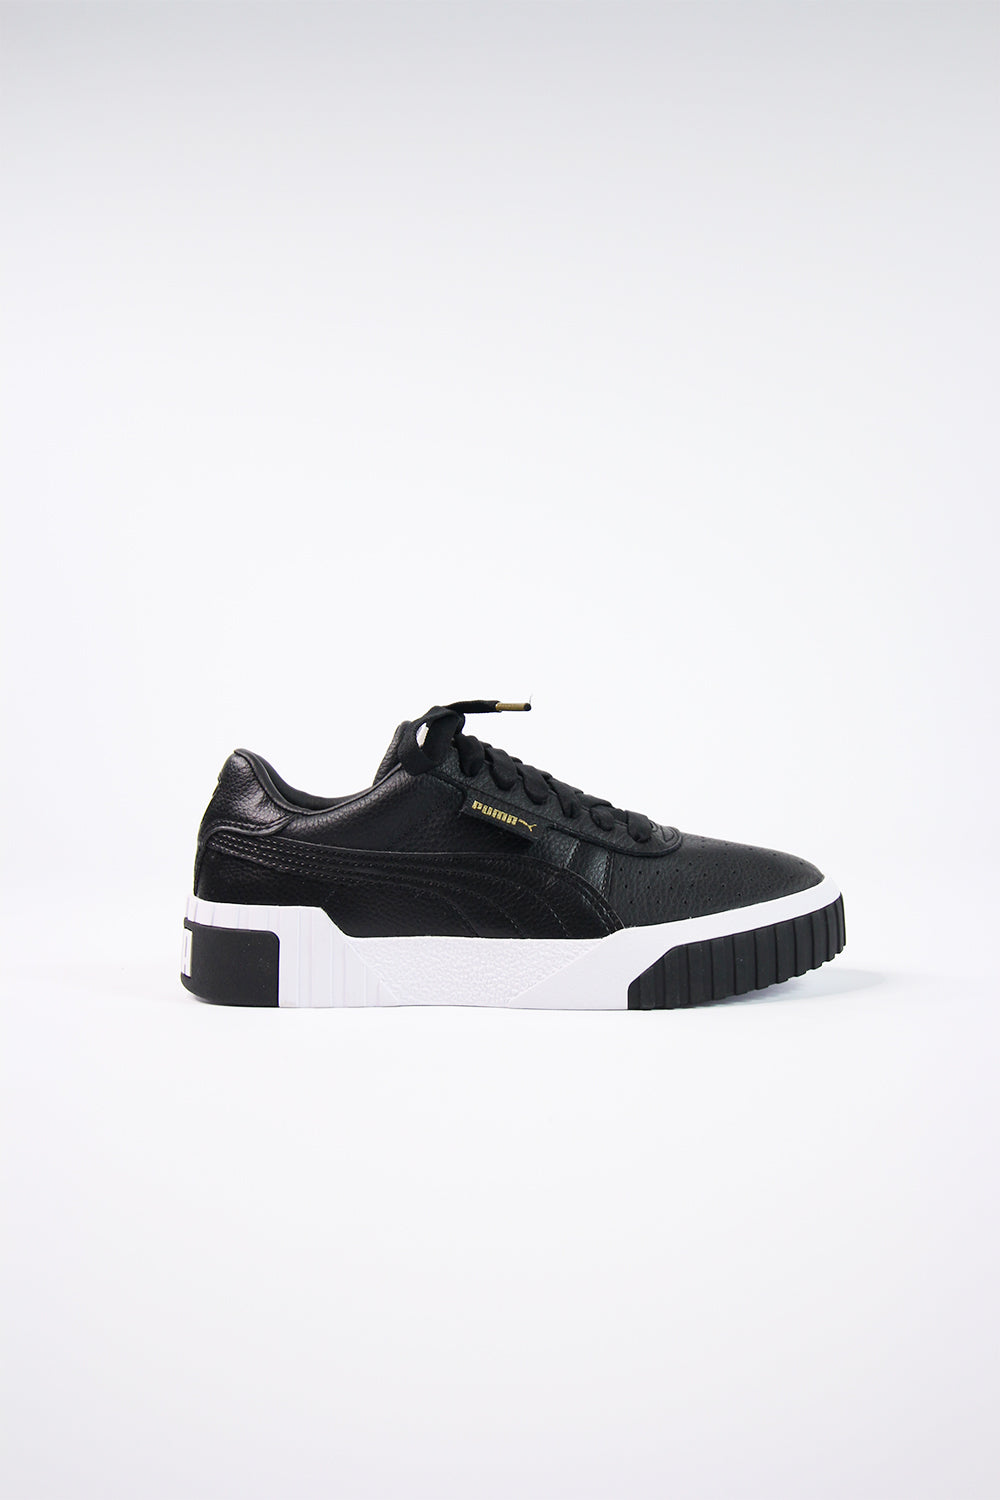 Puma - Cali Women (Black/White) 369155-03